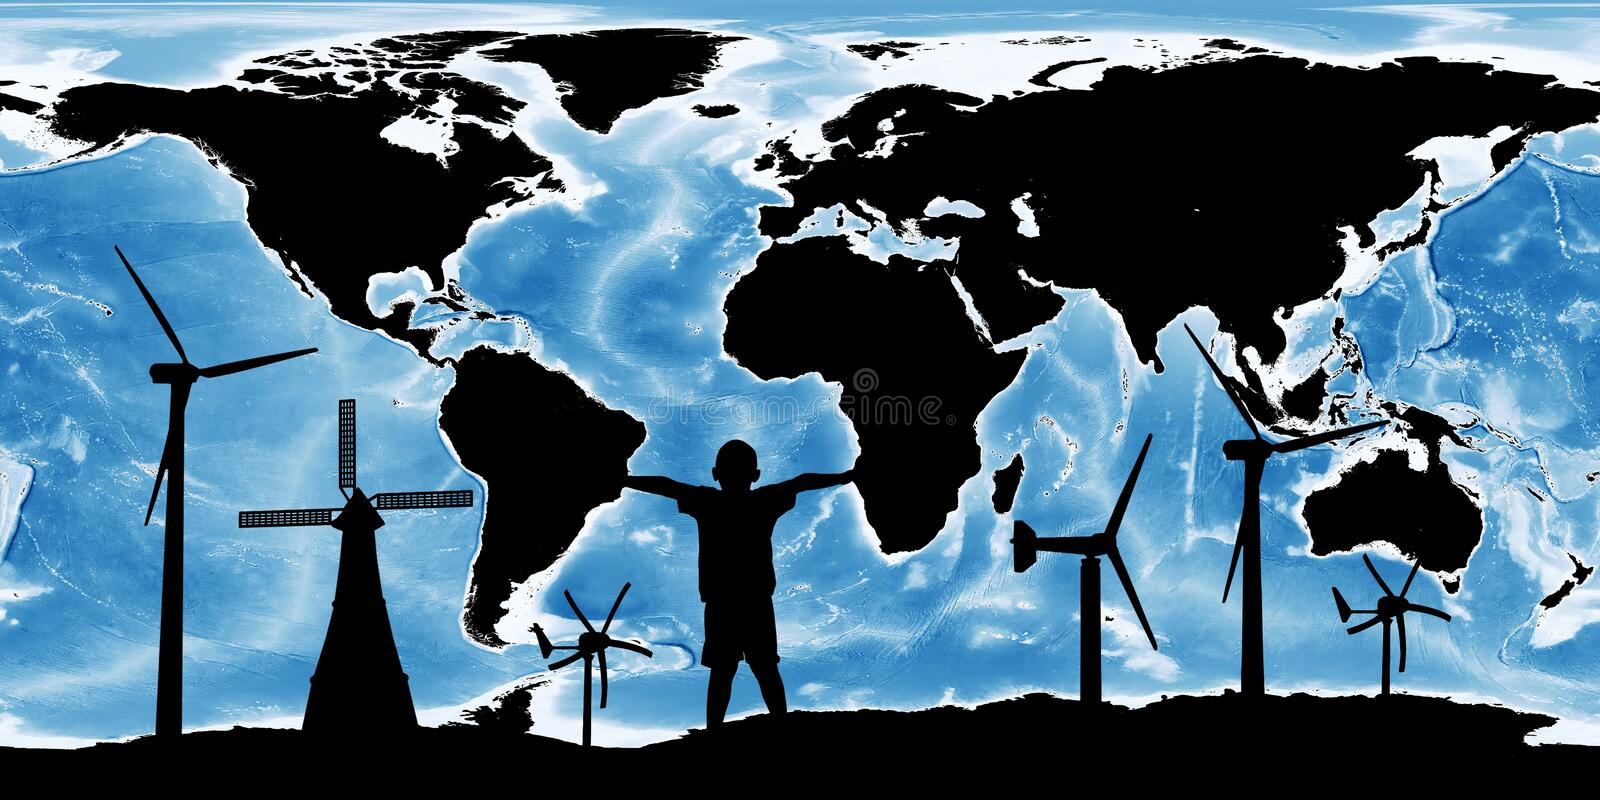 Renewable concept save the world wind turbine on map the earth download renewable concept save the world wind turbine on map the earth stock image gumiabroncs Images